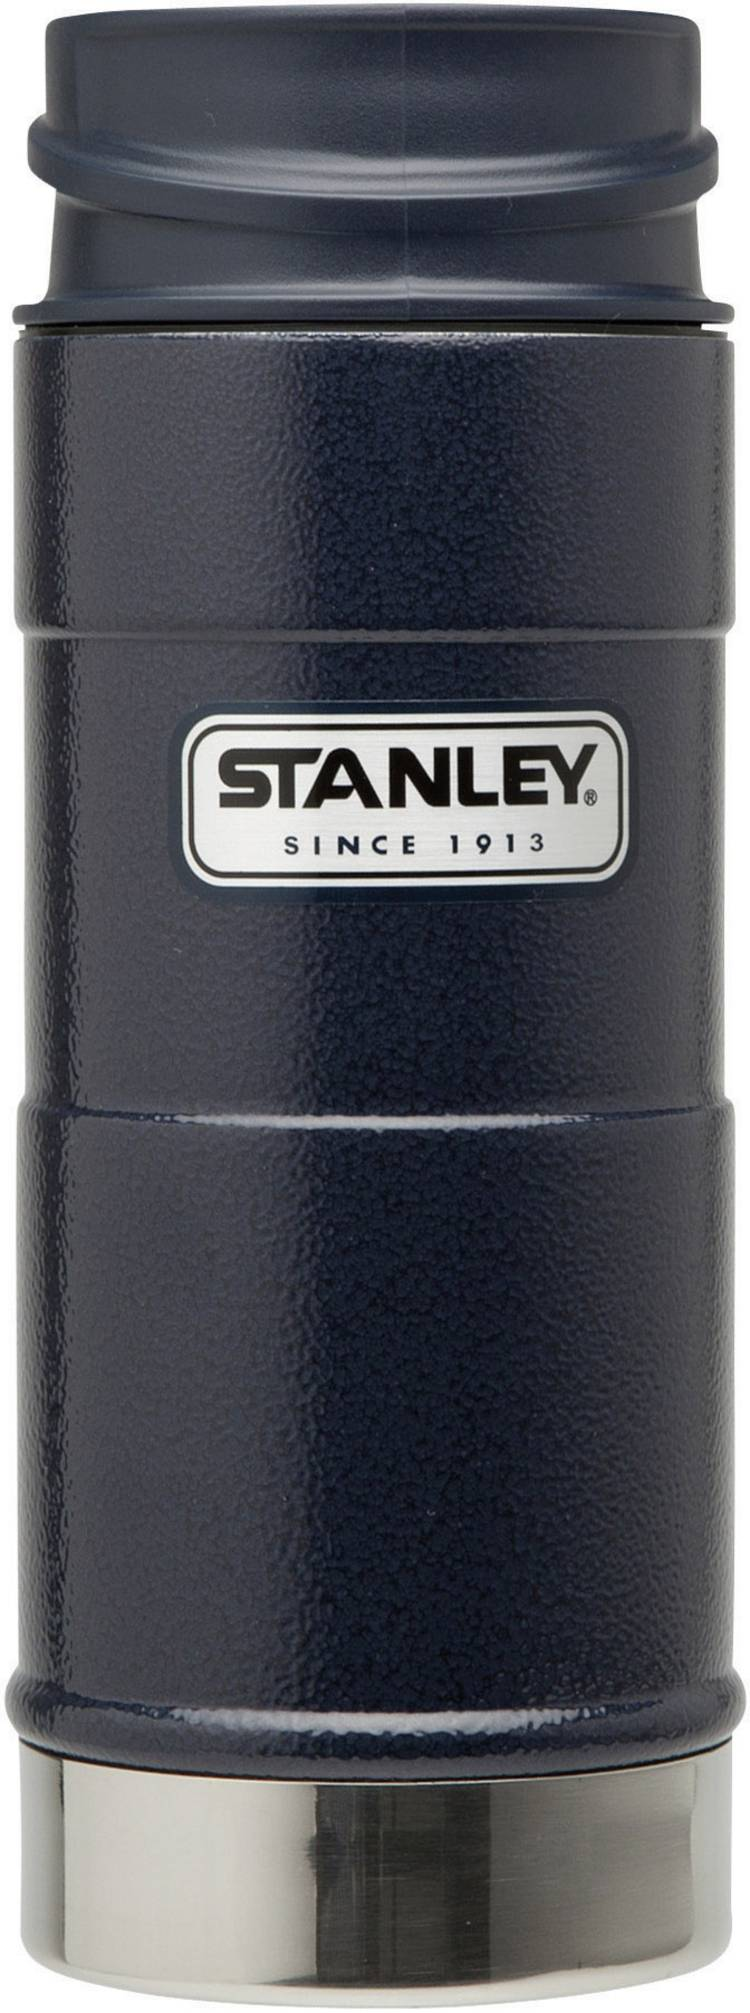 Image of Stanley Classic 10-01569-002 Thermosbeker Donkerblauw 350 ml